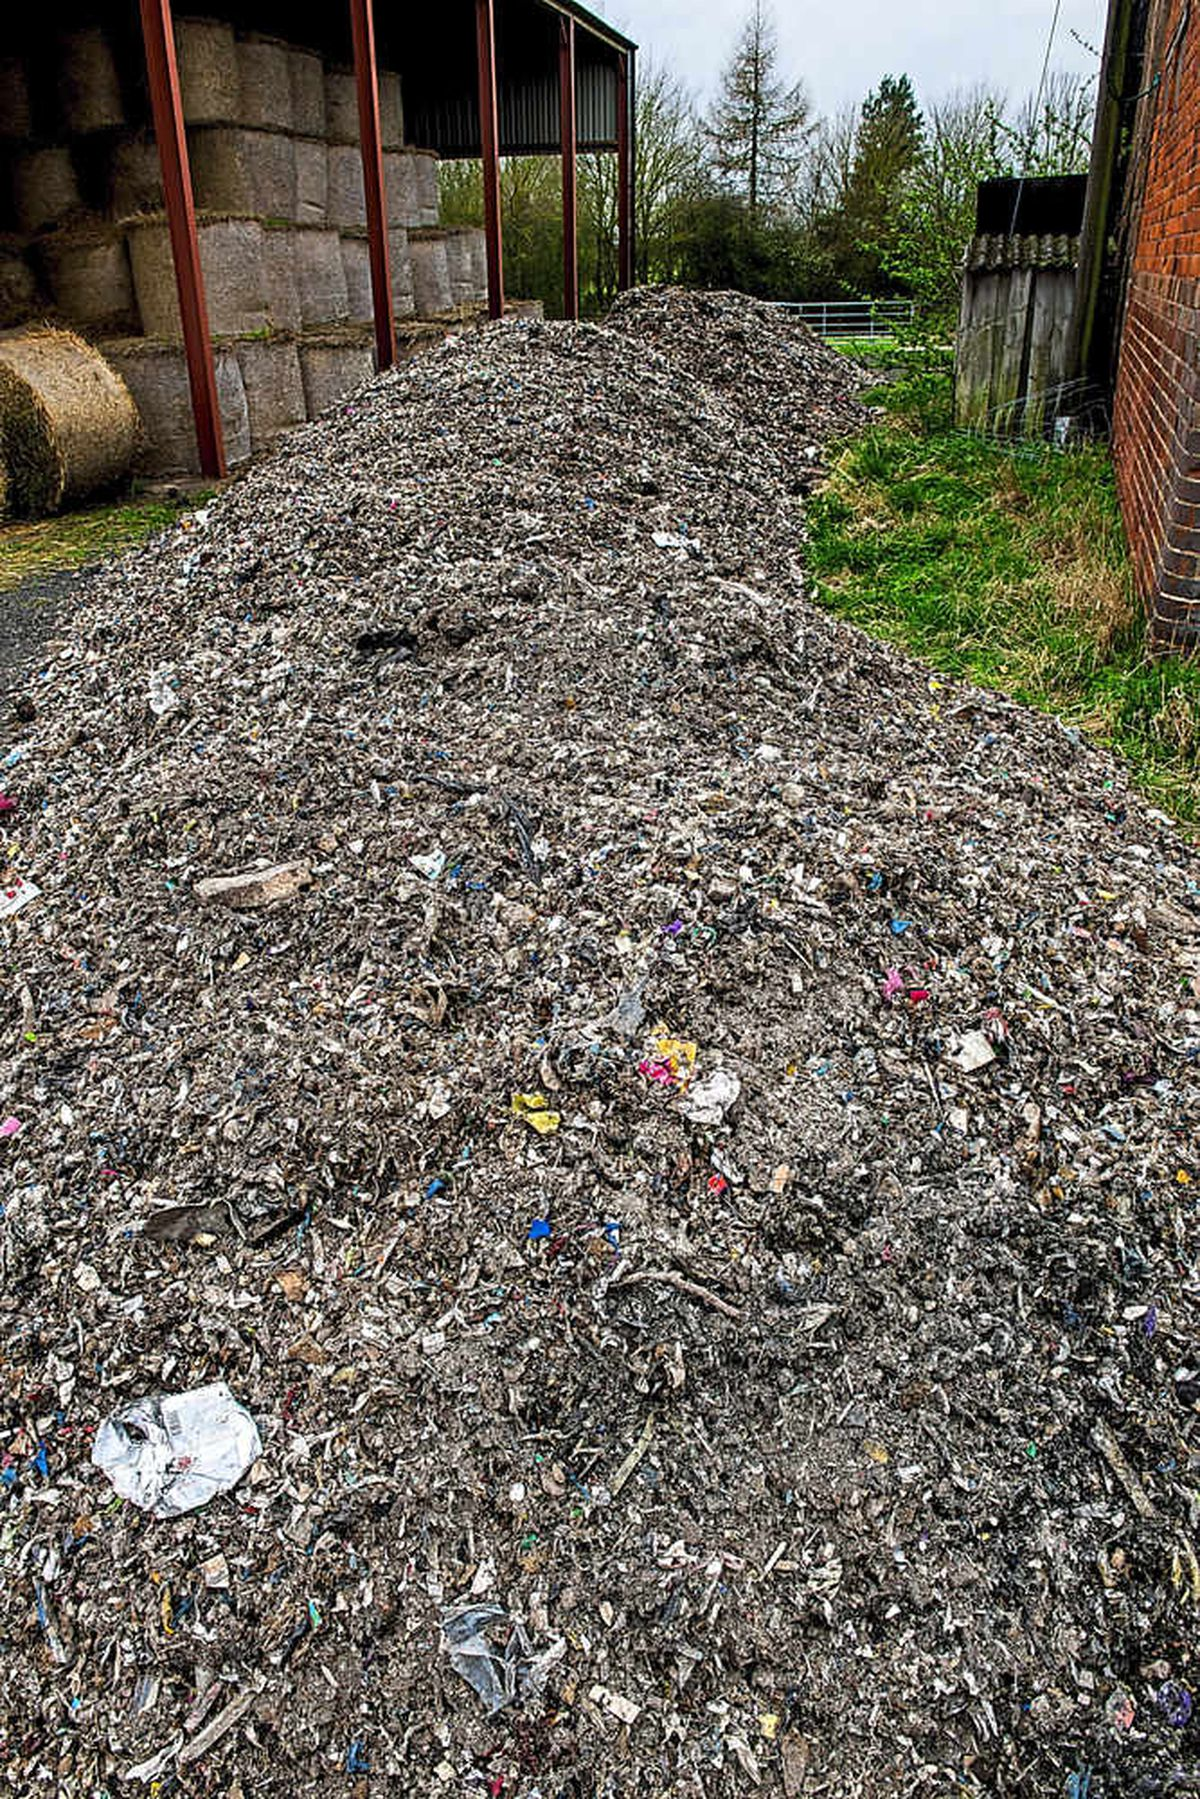 The dumped waste at Hill End Farm